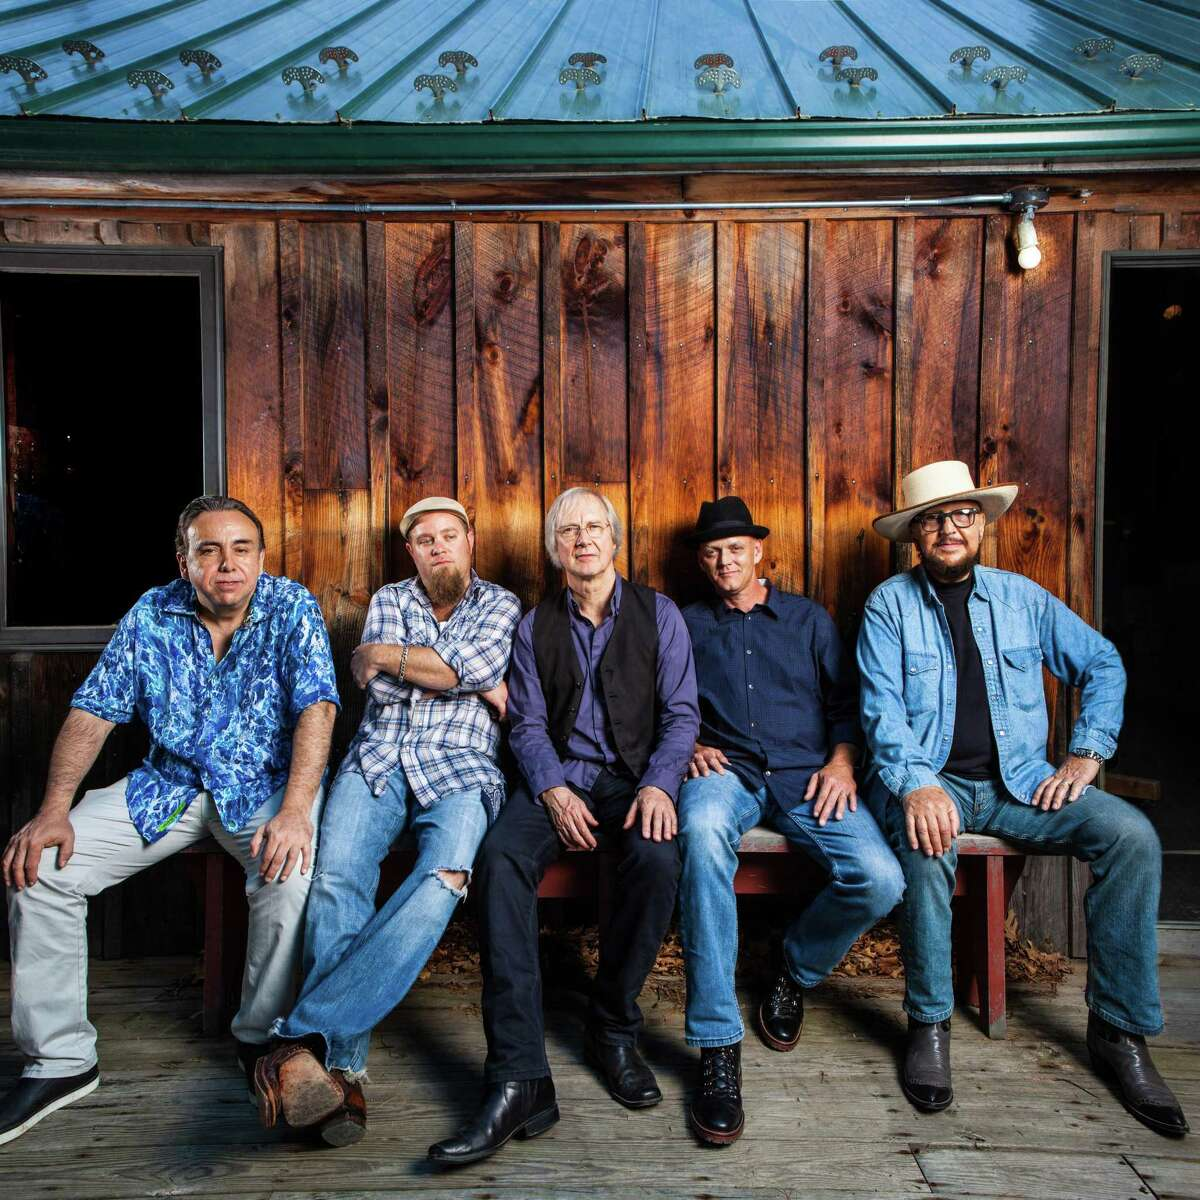 The Weight Band will perform at The Warehouse at Fairfield Theatre Company on Saturday, and at Hartford's Infinity Music Hall on Feb. 16. Brian Mitchell, left, Michael Bram, Jim Weider, Albert Rogers and Marty Grebb. Find out more.